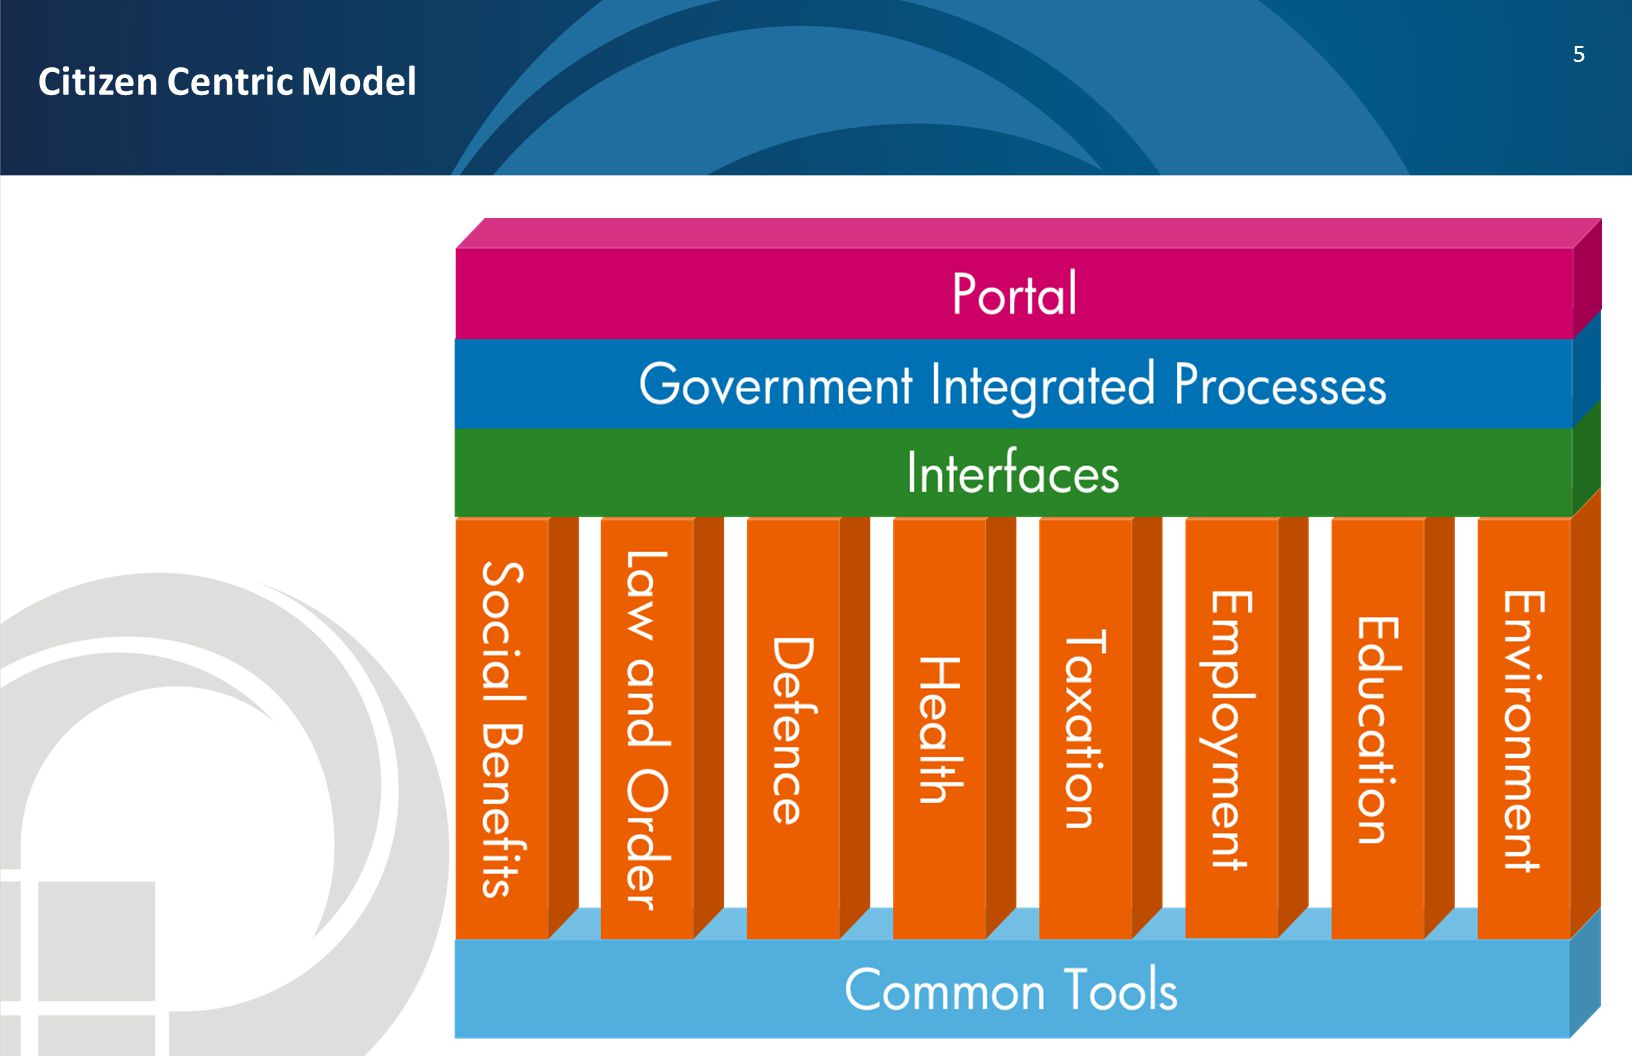 Citizen Centric Model